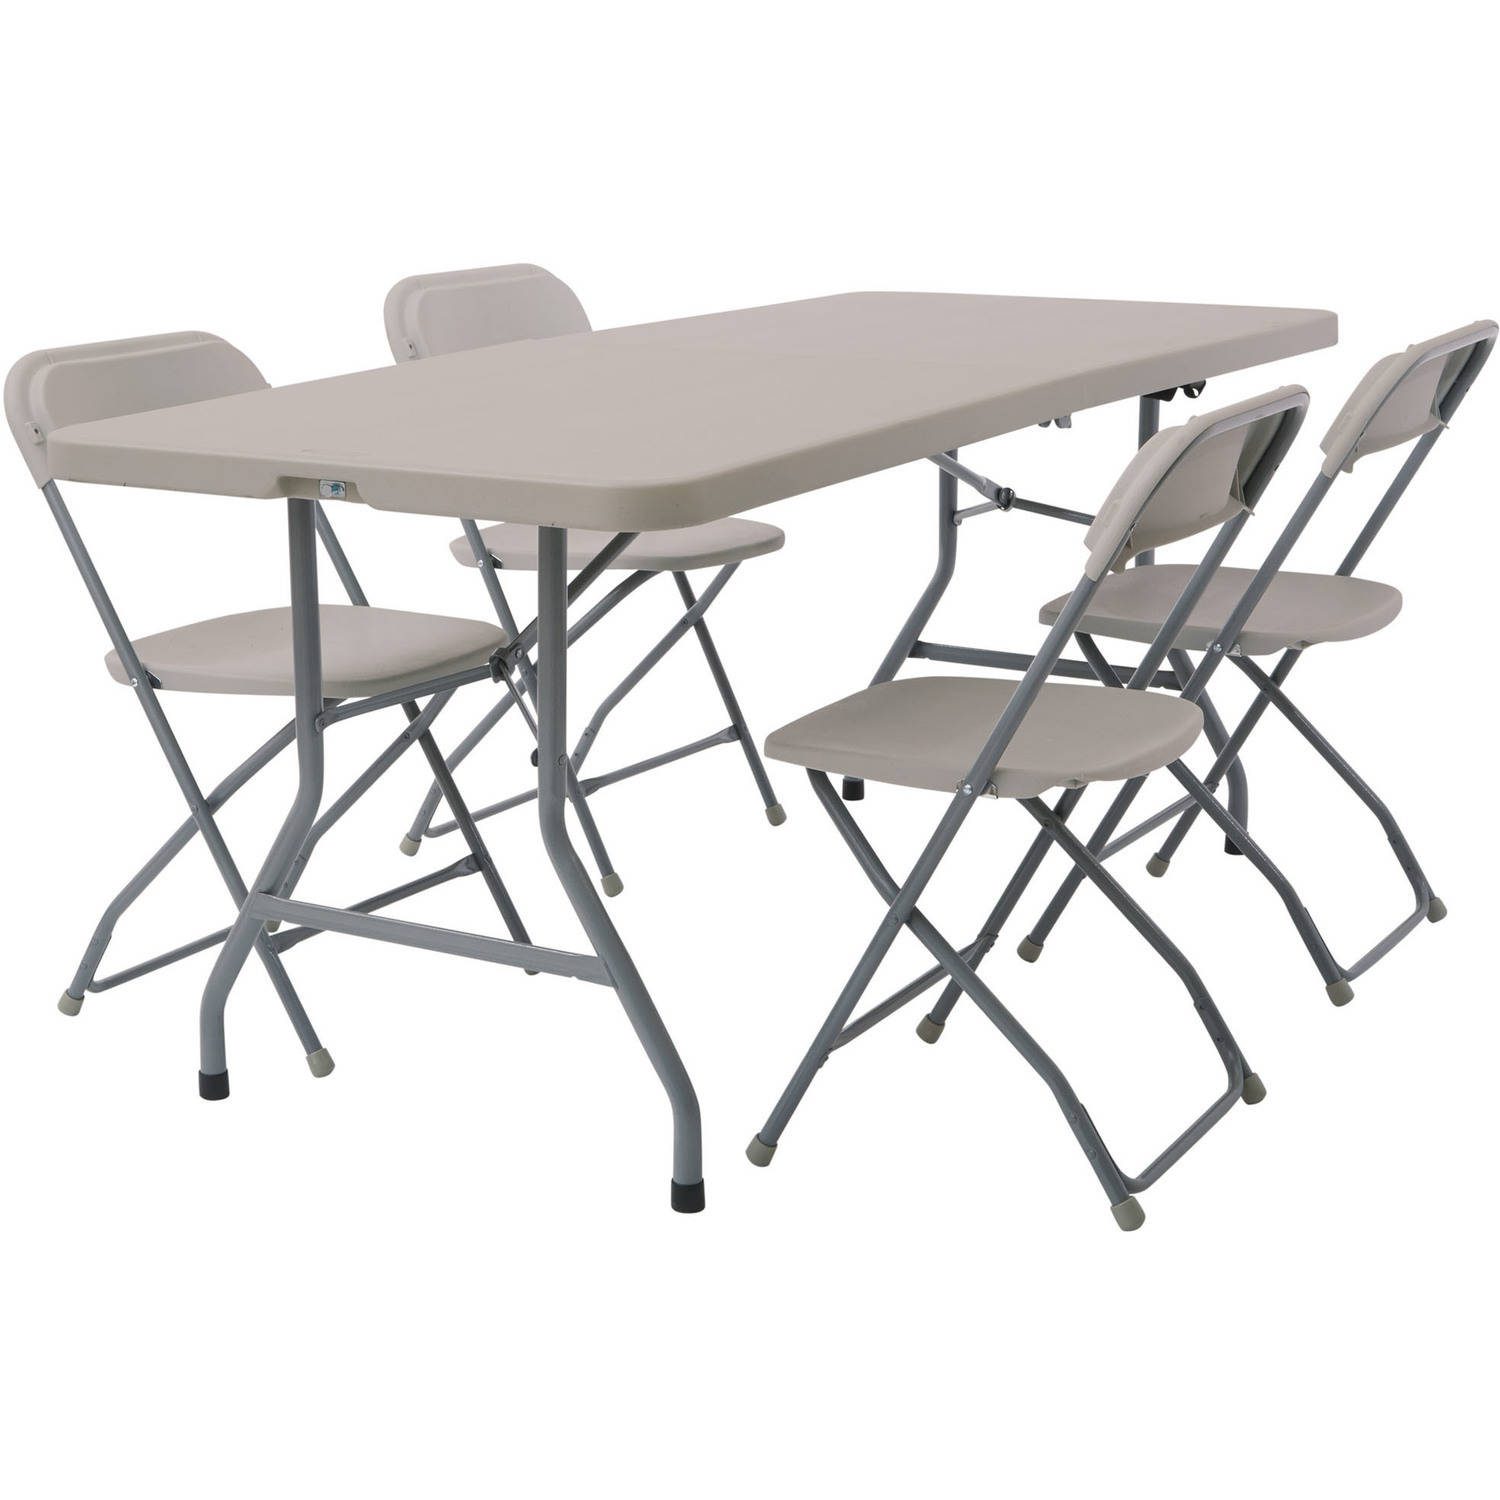 5-Piece Folding Set, Four Chairs and Table